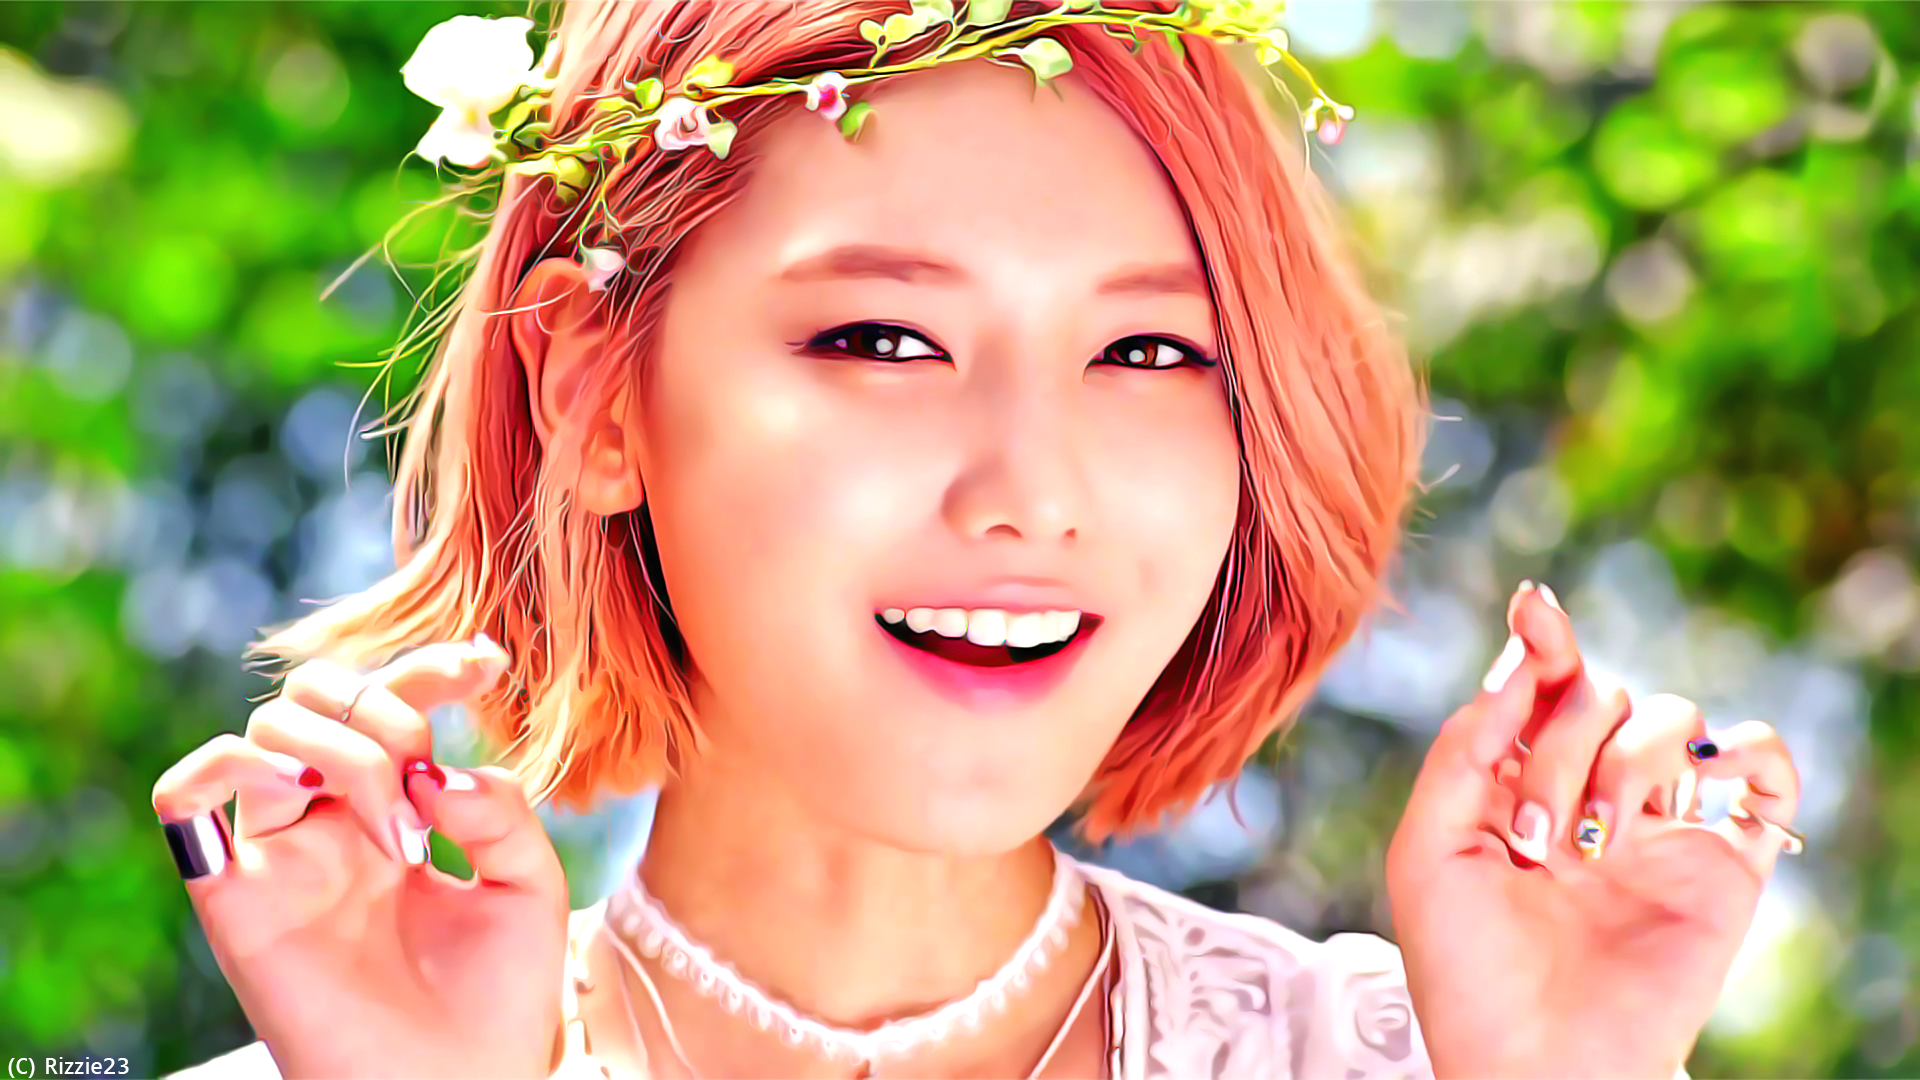 wallpapers on sooyoungsters deviantart